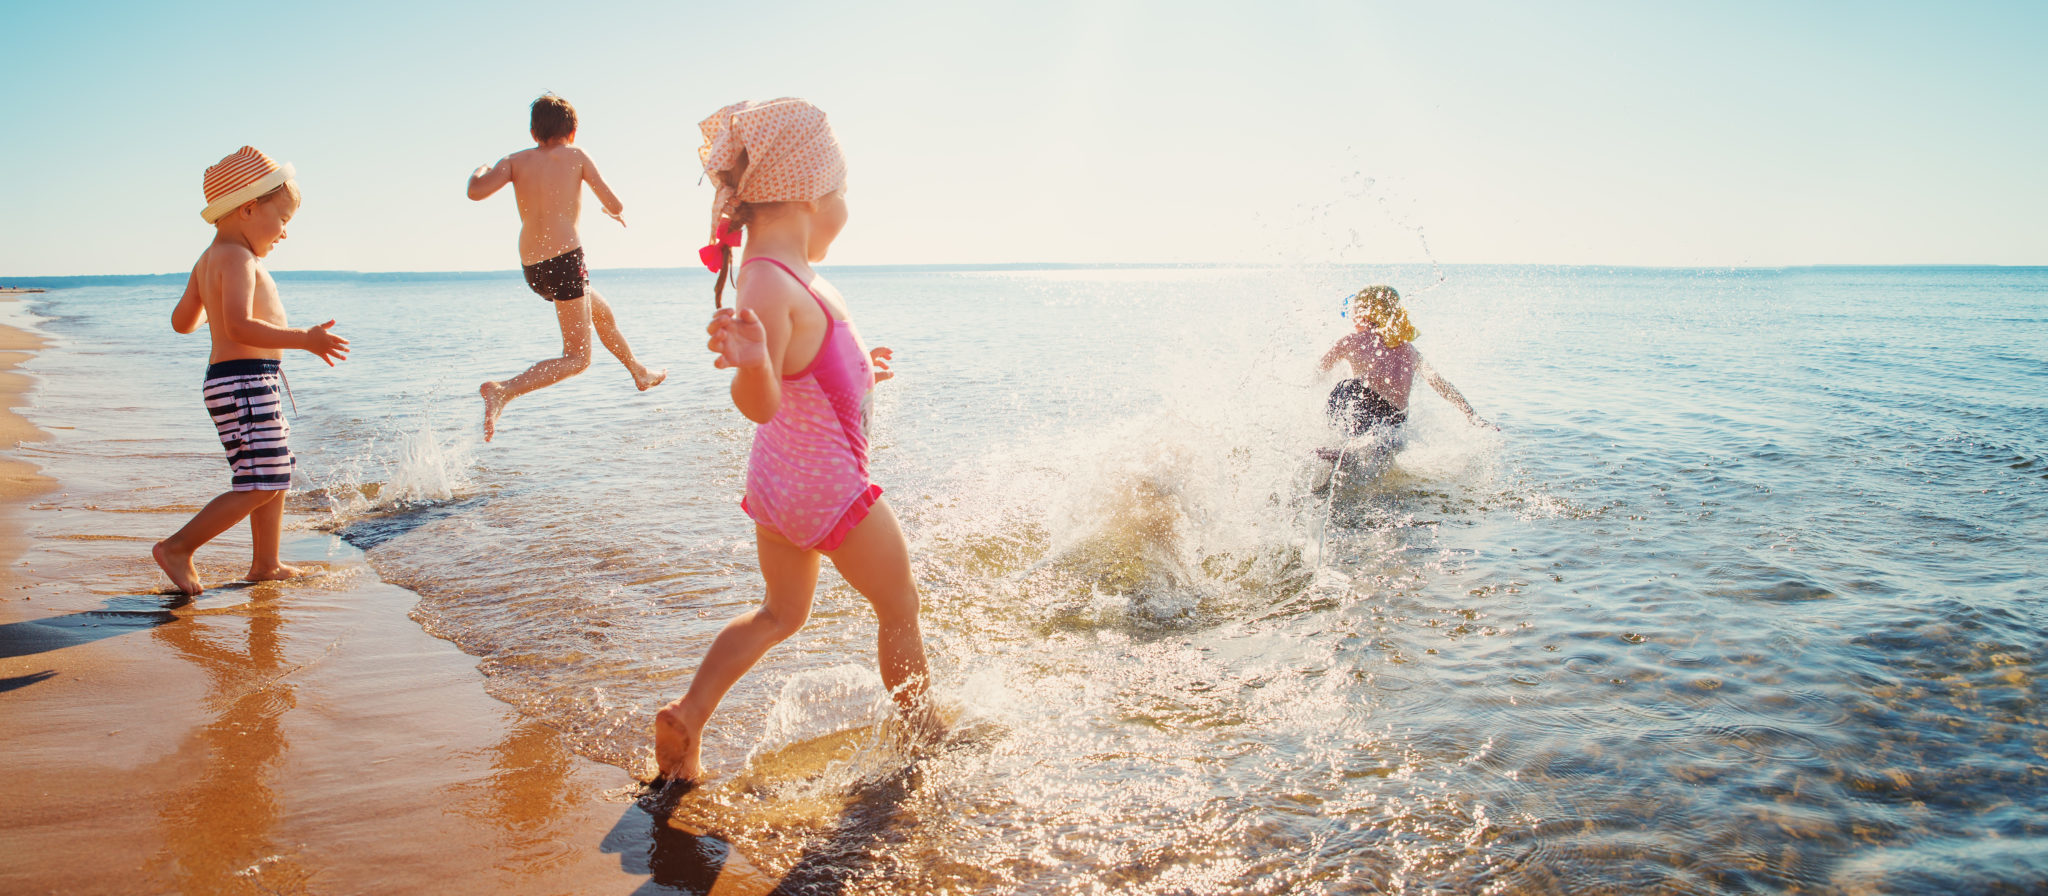 There are few environments that bring joy to people of all different ages quite the same way that a beach does, no matter if it is a lake or ocean.